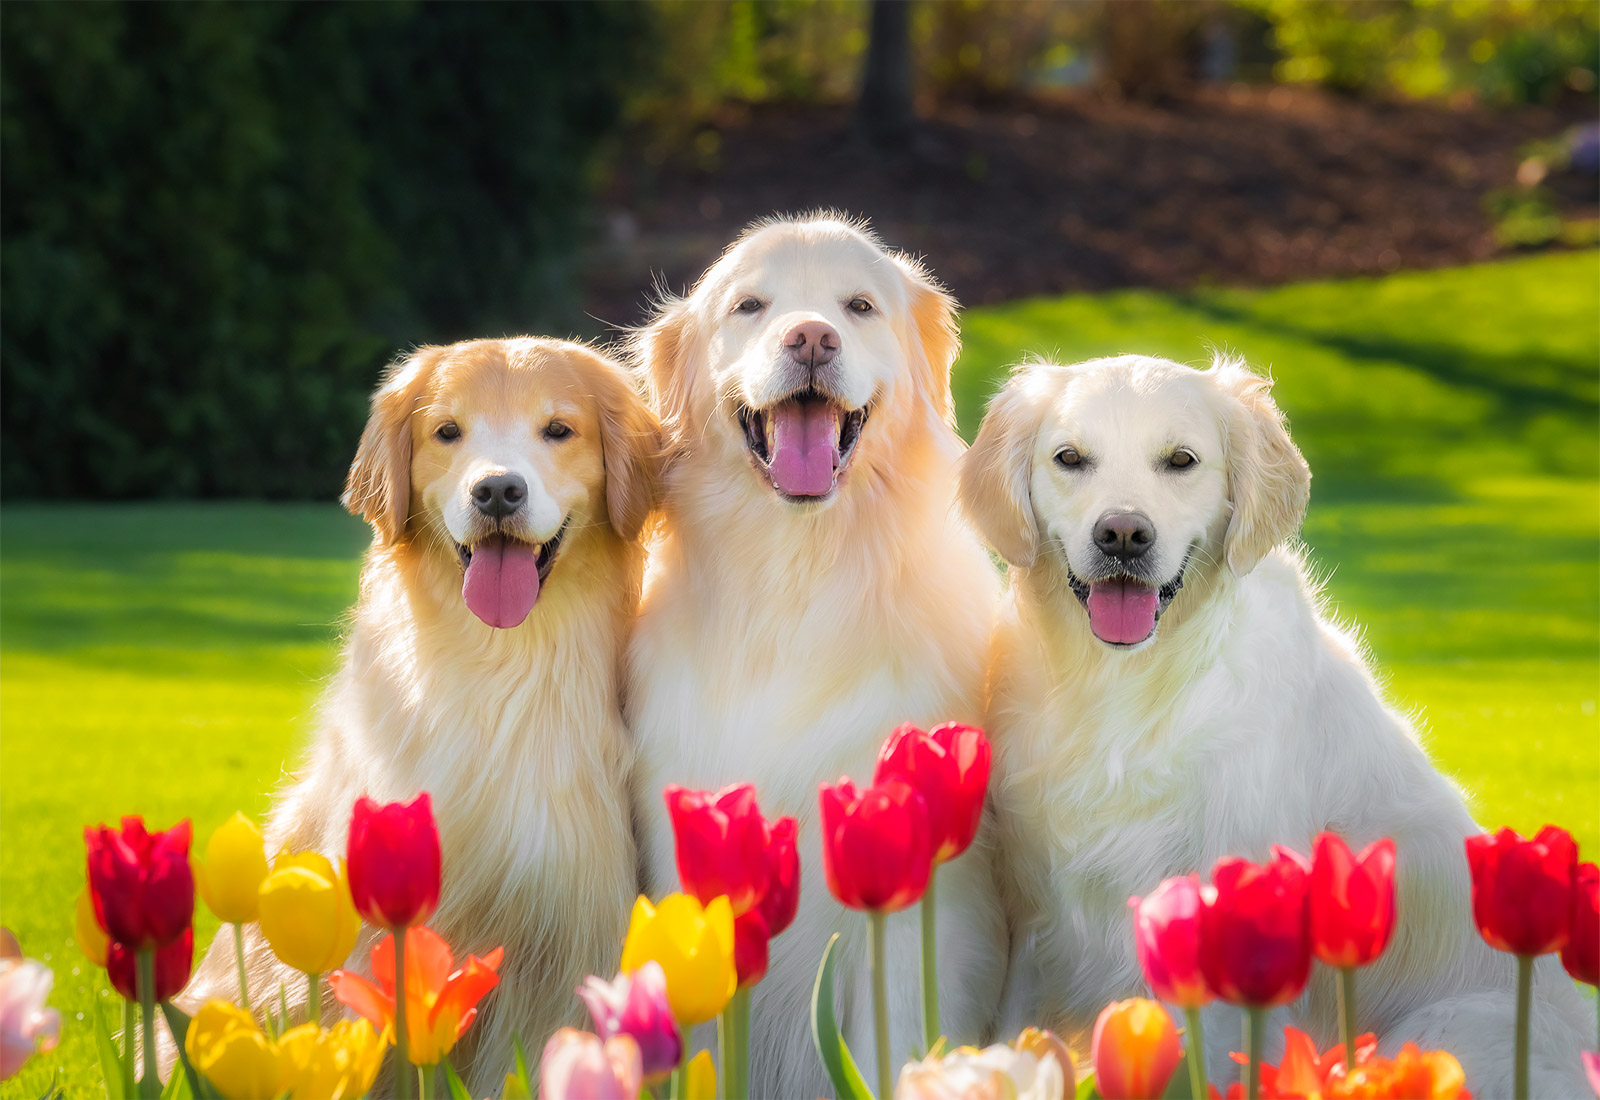 Three Golden Retrievers smiling in the tulips